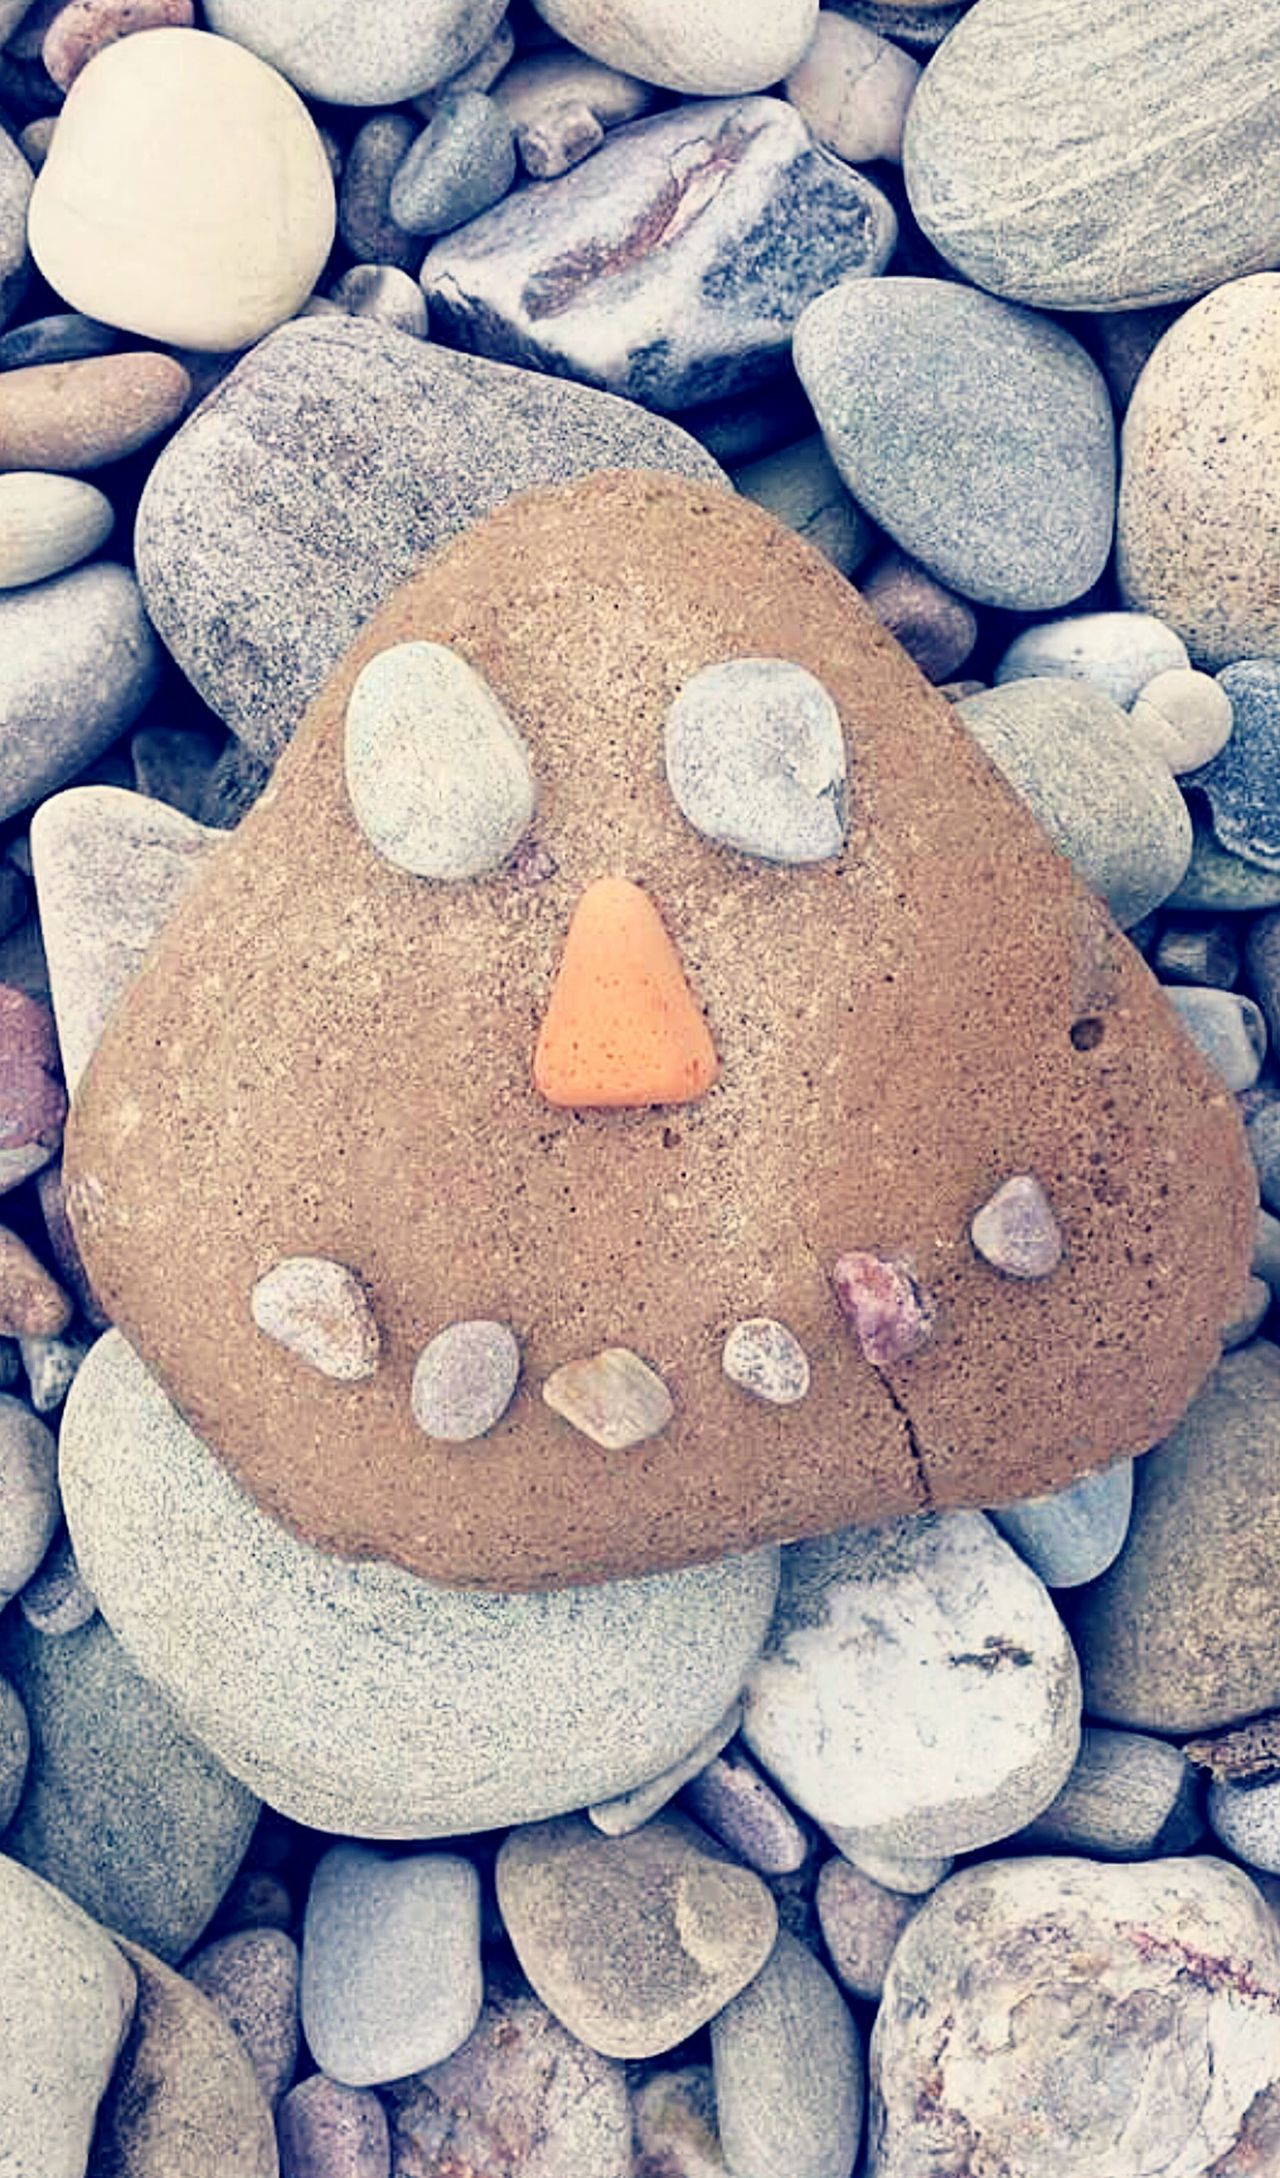 Pebbles Fun Funny Faces On The Beach Stones Cheese! Spey Bay